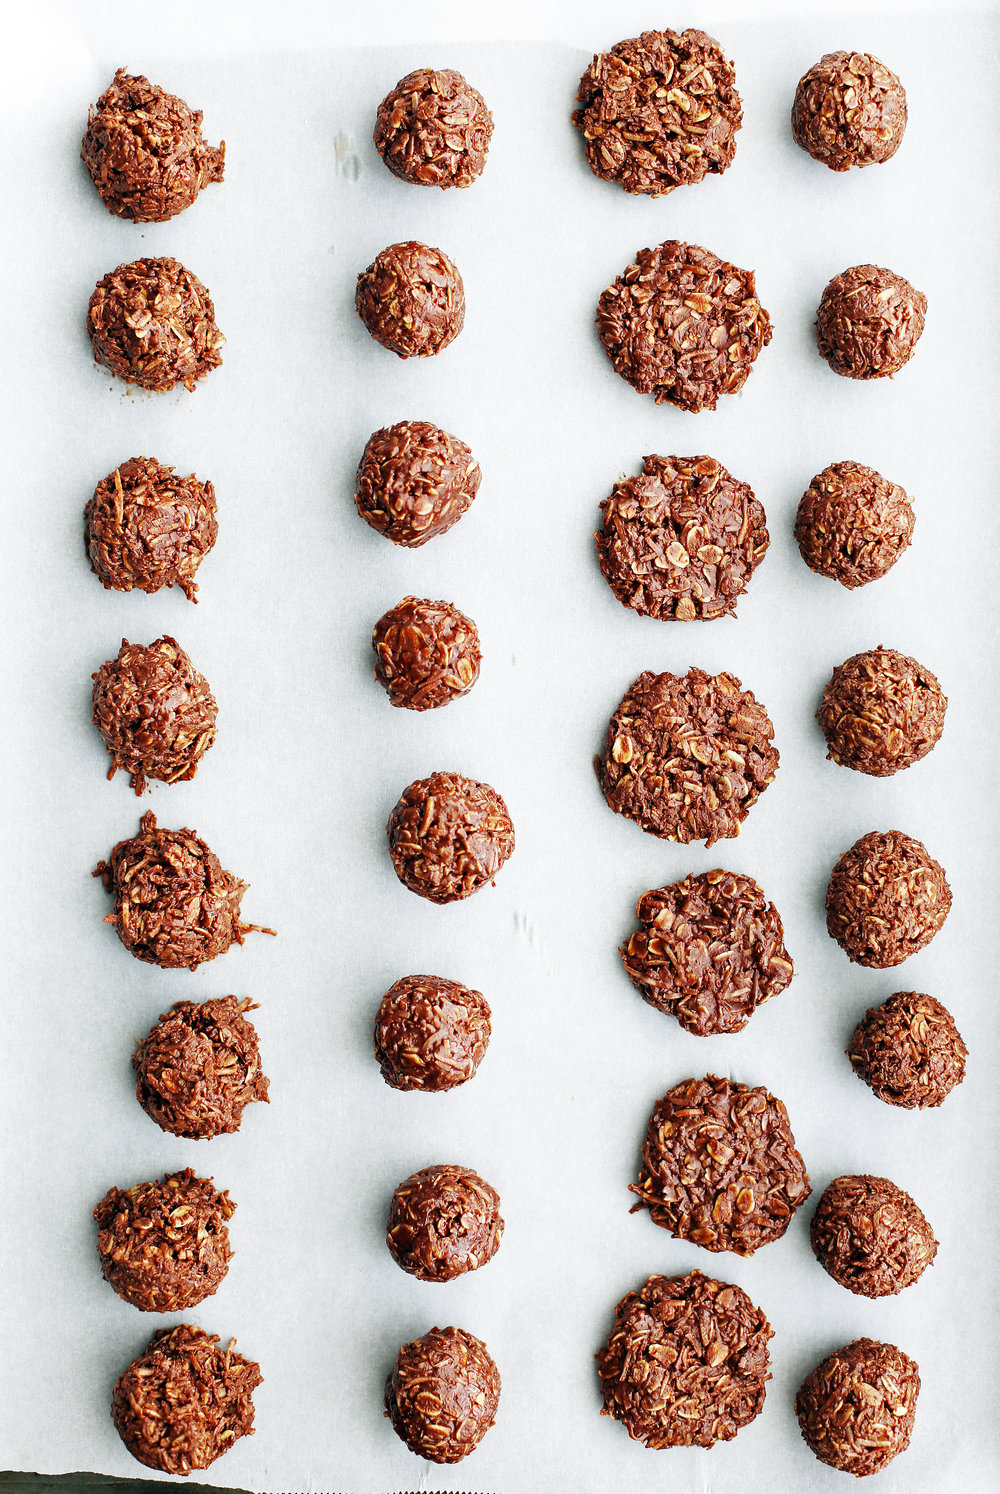 No-Bake Peanut Butter Chocolate Coconut Cookies in rows on parchment paper.